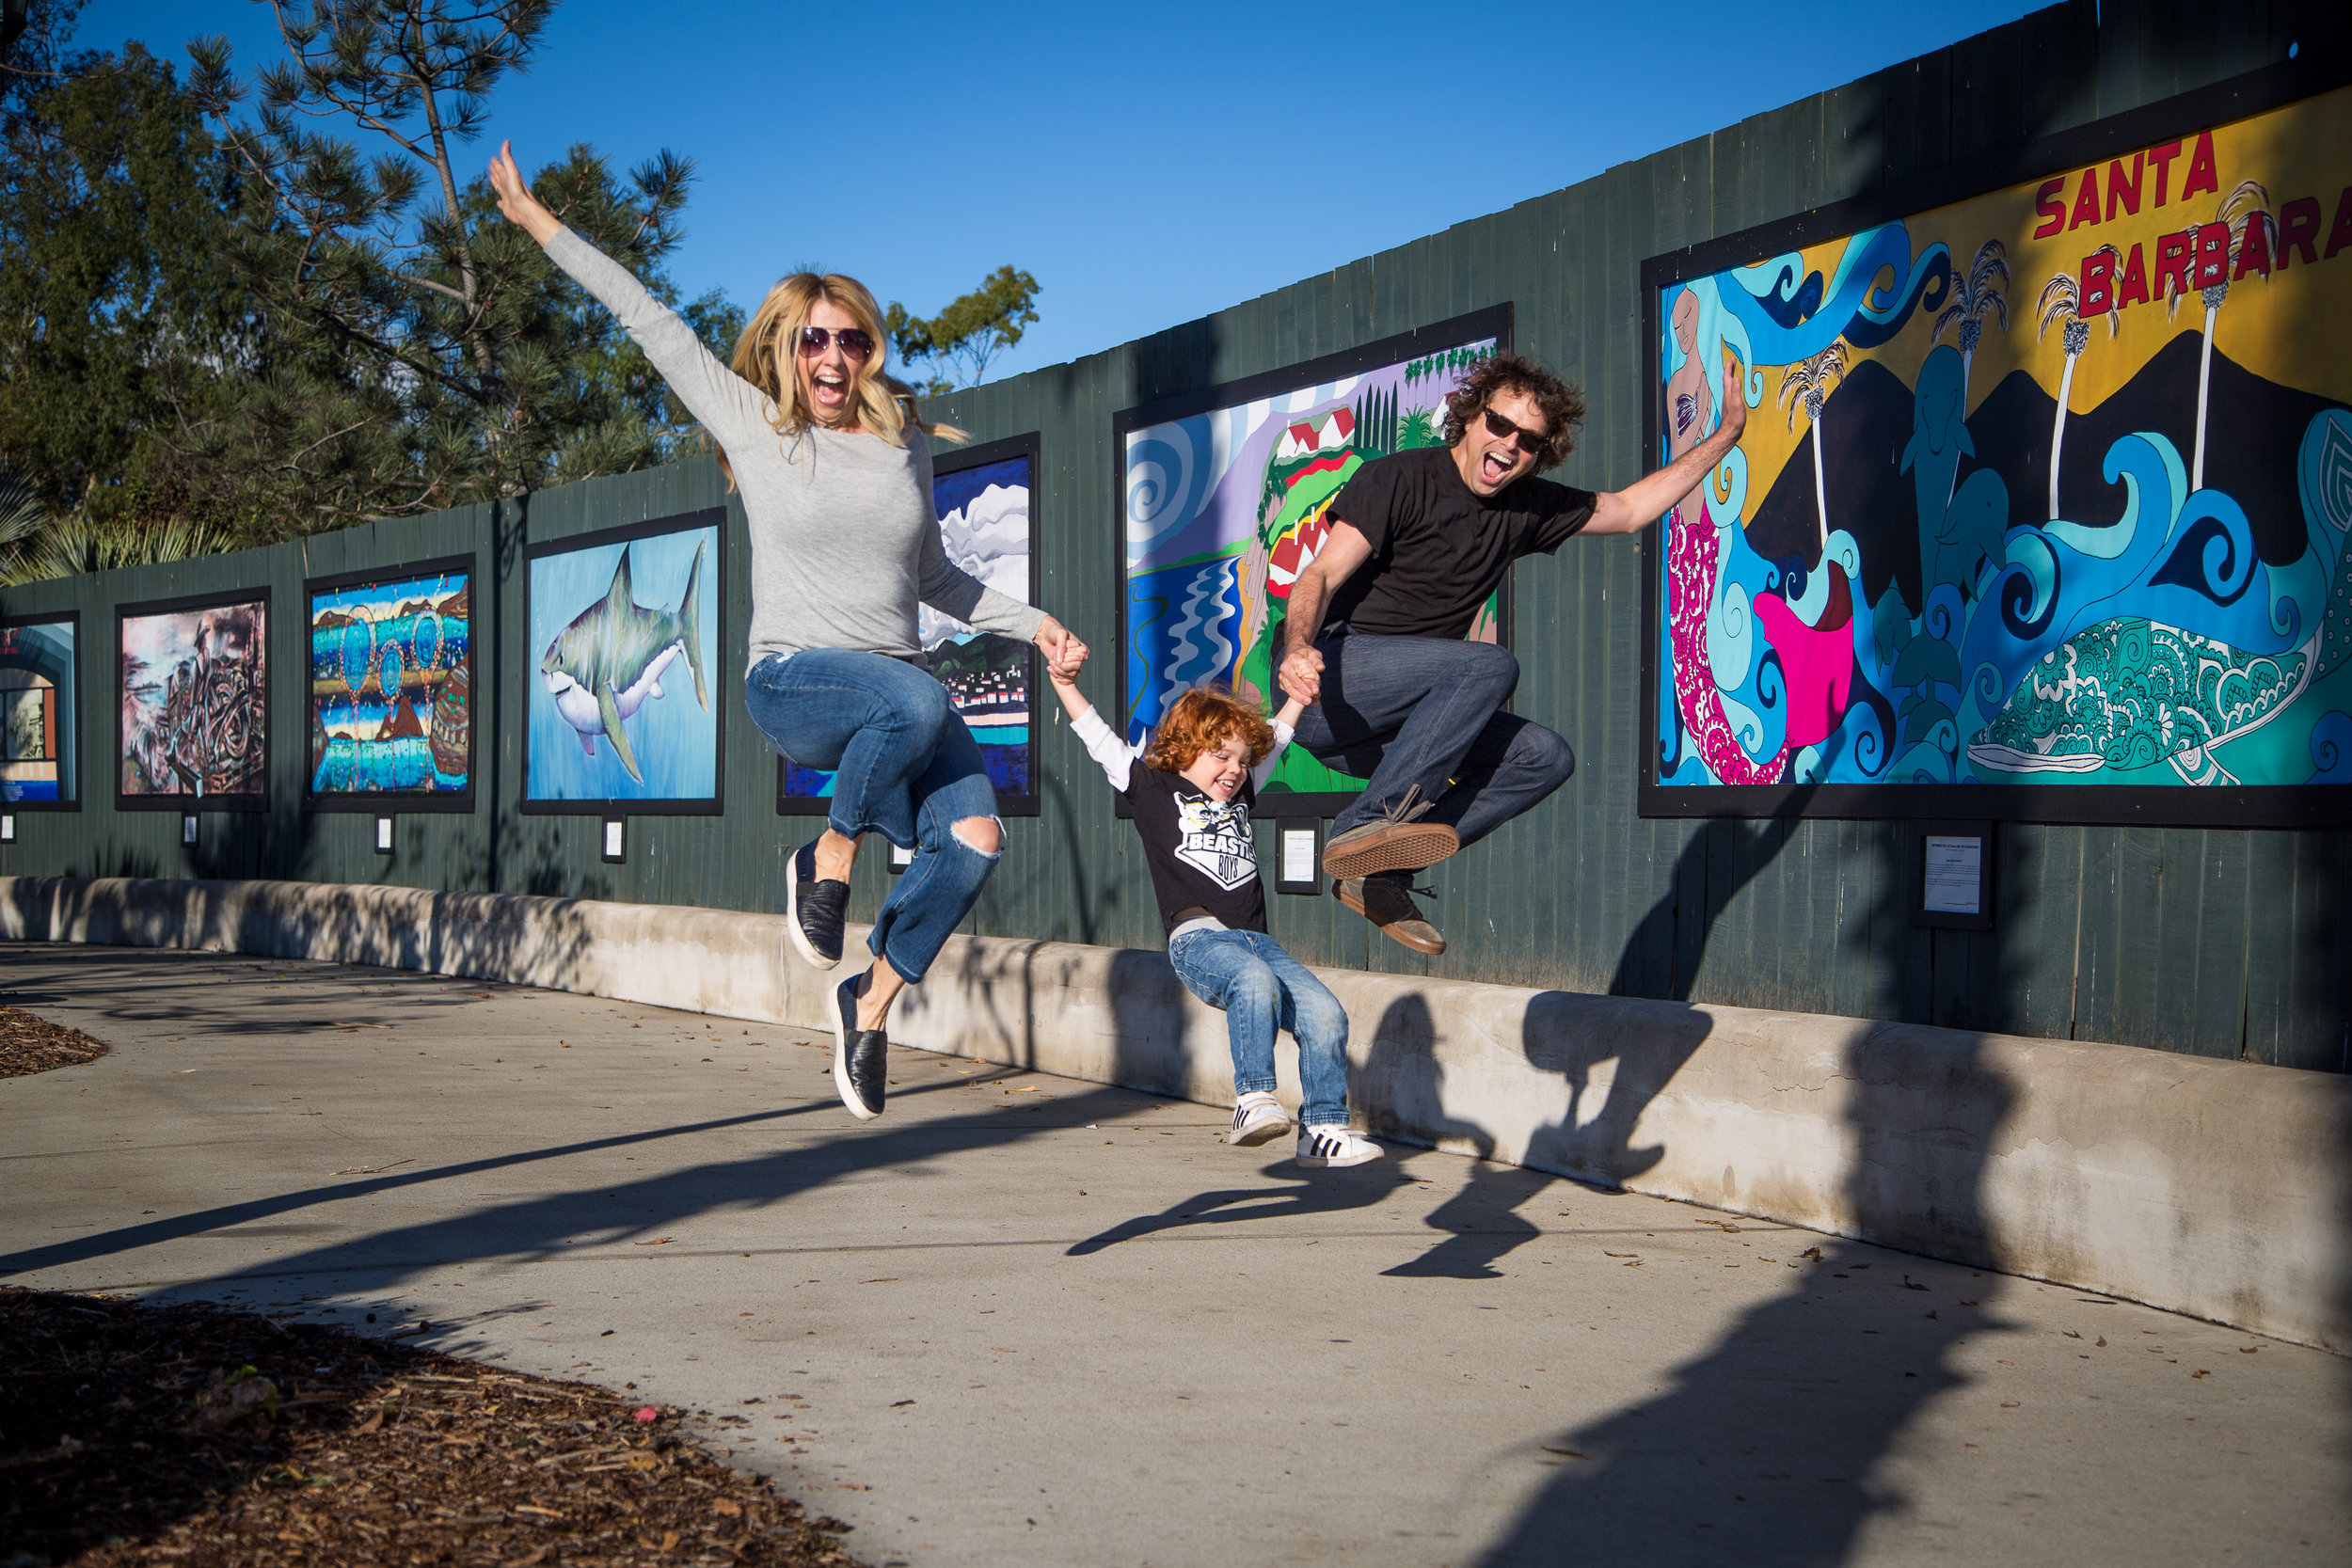 Welcome to the Dance Arts family! This is a HUGE year for us, as we celebrate 20 years of dance and community in Santa Barbara. I am so grateful you have chosen us to inspire your child.   In our survey last year, we appreciated our successes, and listened to ways that we can serve you better. We have an incredible administrative team that is here to help you. New facecs: Rita, Susan, Nathan, along with veterans Lauren, Julie and Brittany are here to help you navigate through your child's dance season. We hope our 'new look' will make information easier to navigate. Newsletters will always go out the first Wednesday of the month with a Friday Focus giving a 'smaller bite' when we are close to showtime! These will go out via SMS and email, but can always be found on the website! We want to keep you informed!  Our teaching staff is committed to giving your child a very special and individualized experience: setting goals, working on our syllabus, and preparing them for our performances. Each class will be assigned a 'buddy' this year, and this older dancer will serve as a mentor, leader, and friendly face at the studio. Parents will receive photos and videos of your child each session, so you can see that joy and growth are the dividends on your investment!  Whether this is your child's first dance class, or you are preparing your senior for the road to college, this is a special time! I am honored that we get to fill all those years in between for hundreds of dancers. Please feel free to watch class (no matter what your teen says). Whether it is that twirl in a tutu, confidence and swag in hip hop, or effortless grace as she floats through a leap, you have invested in the gift of expression for your child. The gifts are many: discipline, community, friendship, service, confidence, and happiness.  Thank you for entrusting us to give them this experience. Whether they pursue a career or education in dance is irrelavant. We just want our kids to find their 'thing'. I ho